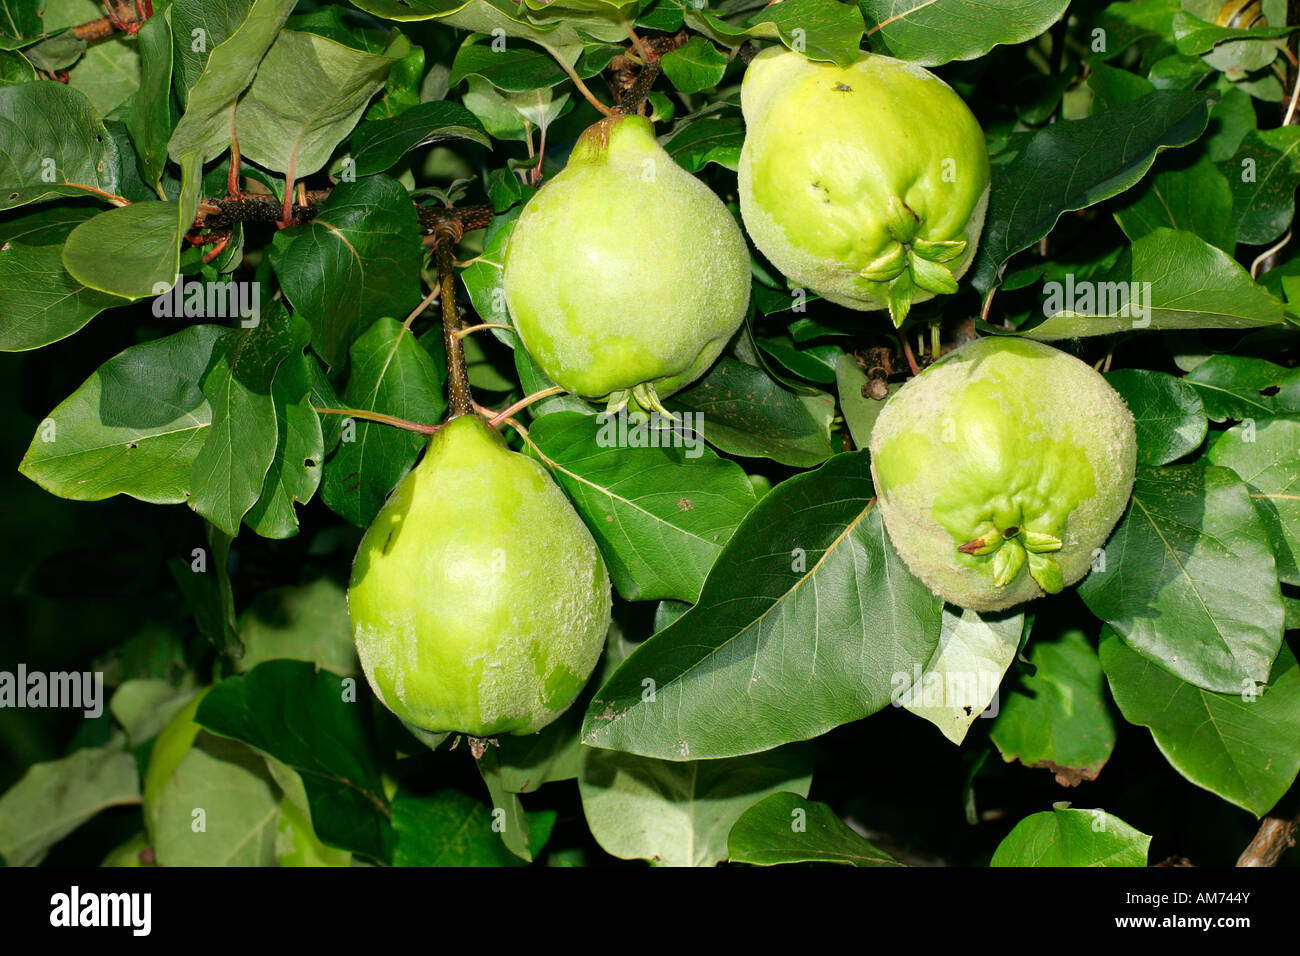 quince quinces fruits cydonia oblonga cultivar konstantinopel stock photo royalty free. Black Bedroom Furniture Sets. Home Design Ideas